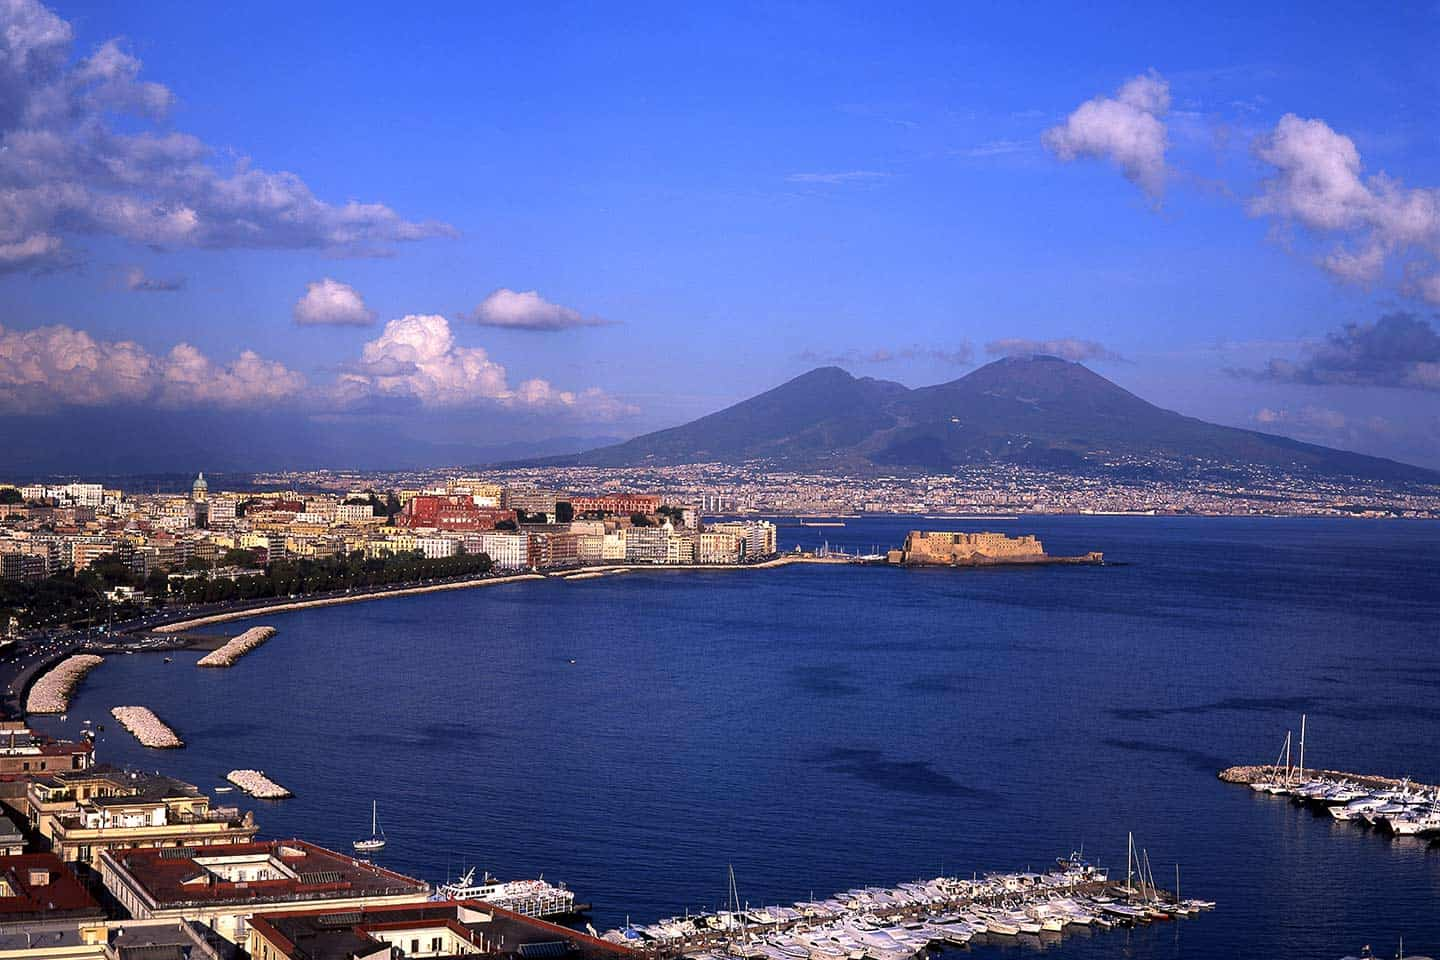 Image of Naples in its magnificent setting below Vesuvius